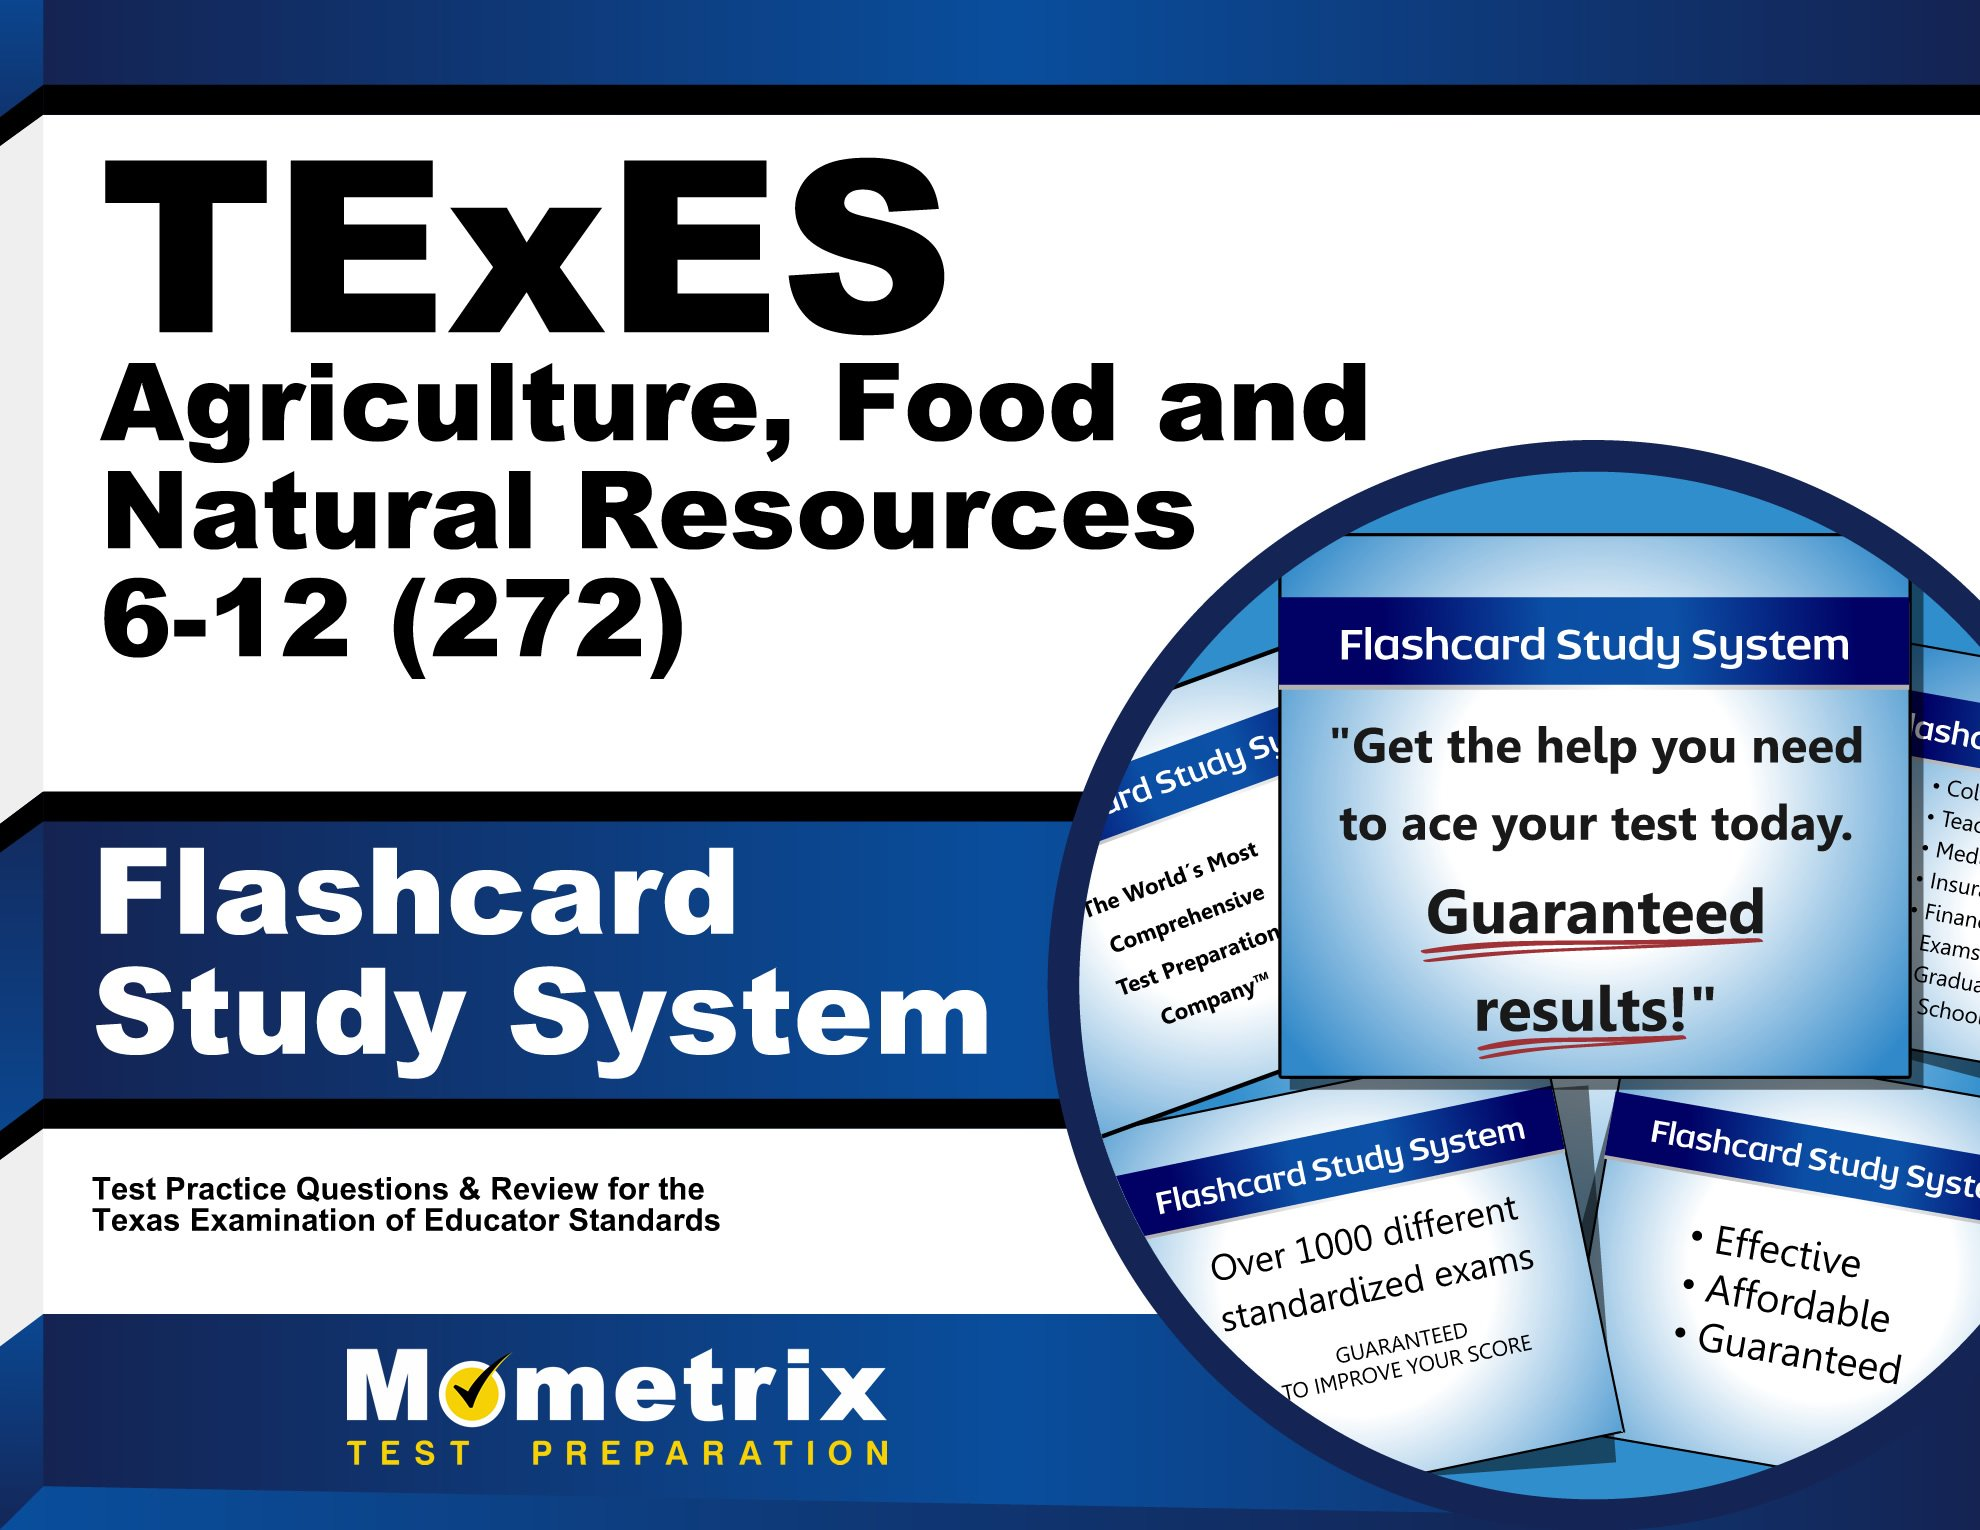 Download TExES Agriculture, Food and Natural Resources 6-12 (272) Flashcard Study System: TExES Test Practice Questions & Review for the Texas Examinations of Educator Standards (Cards) ebook